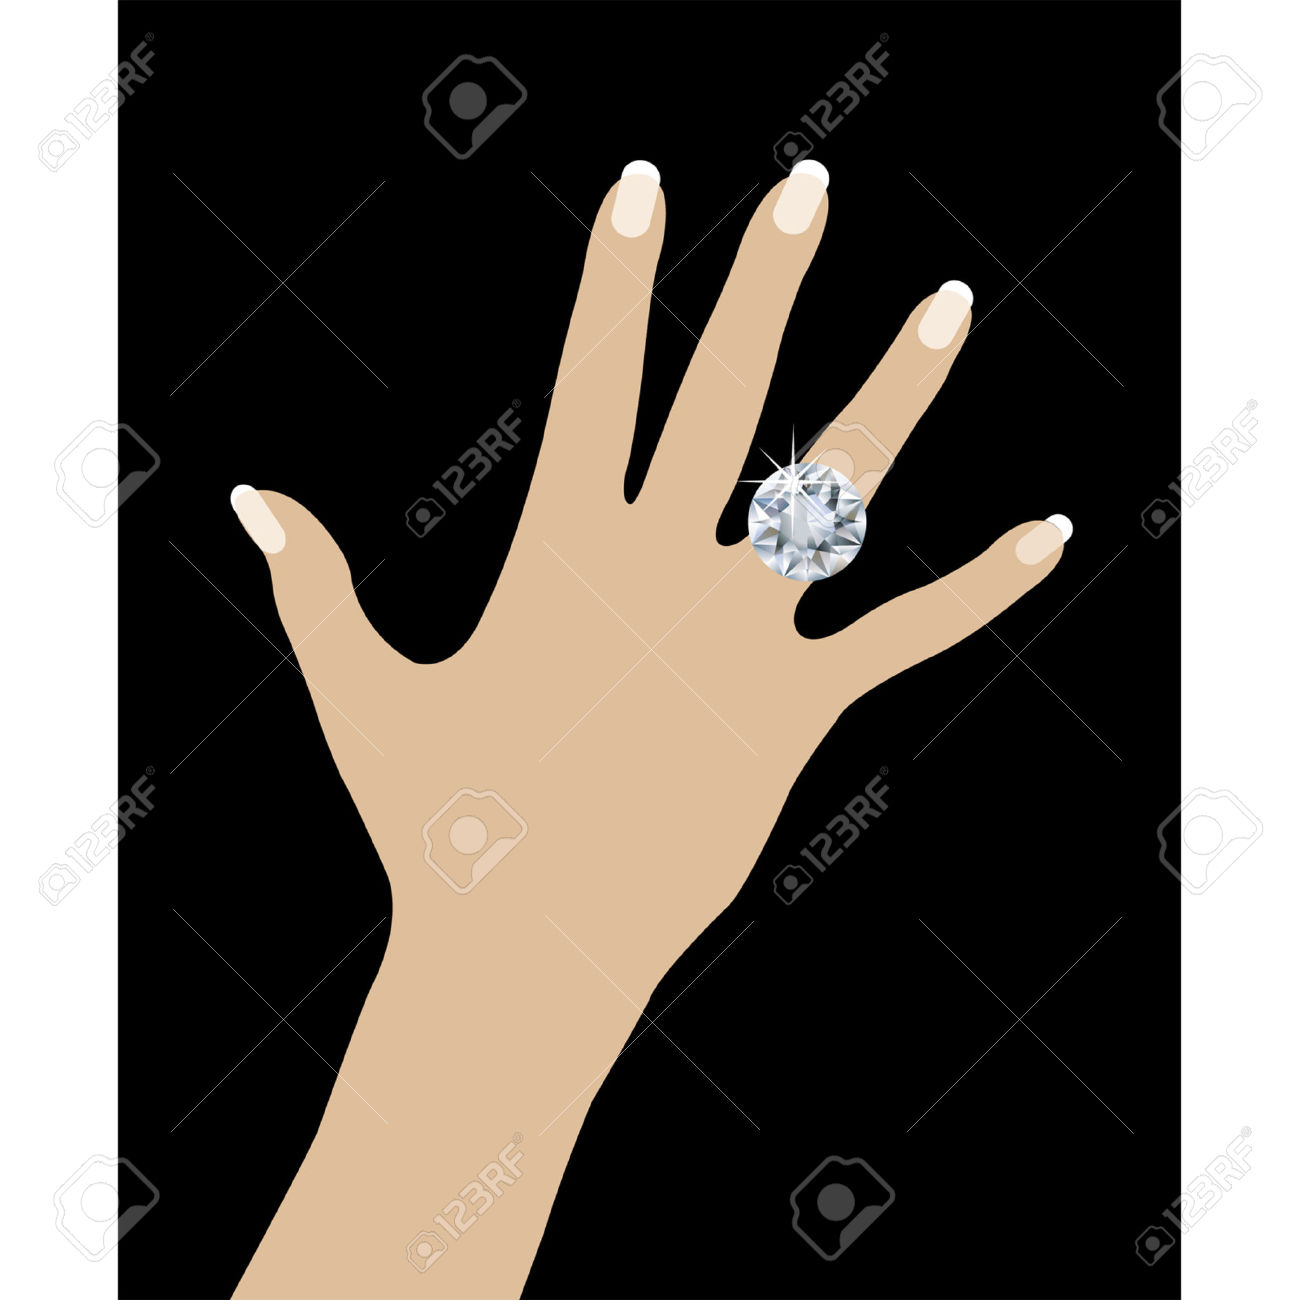 Hand with ring clipart.